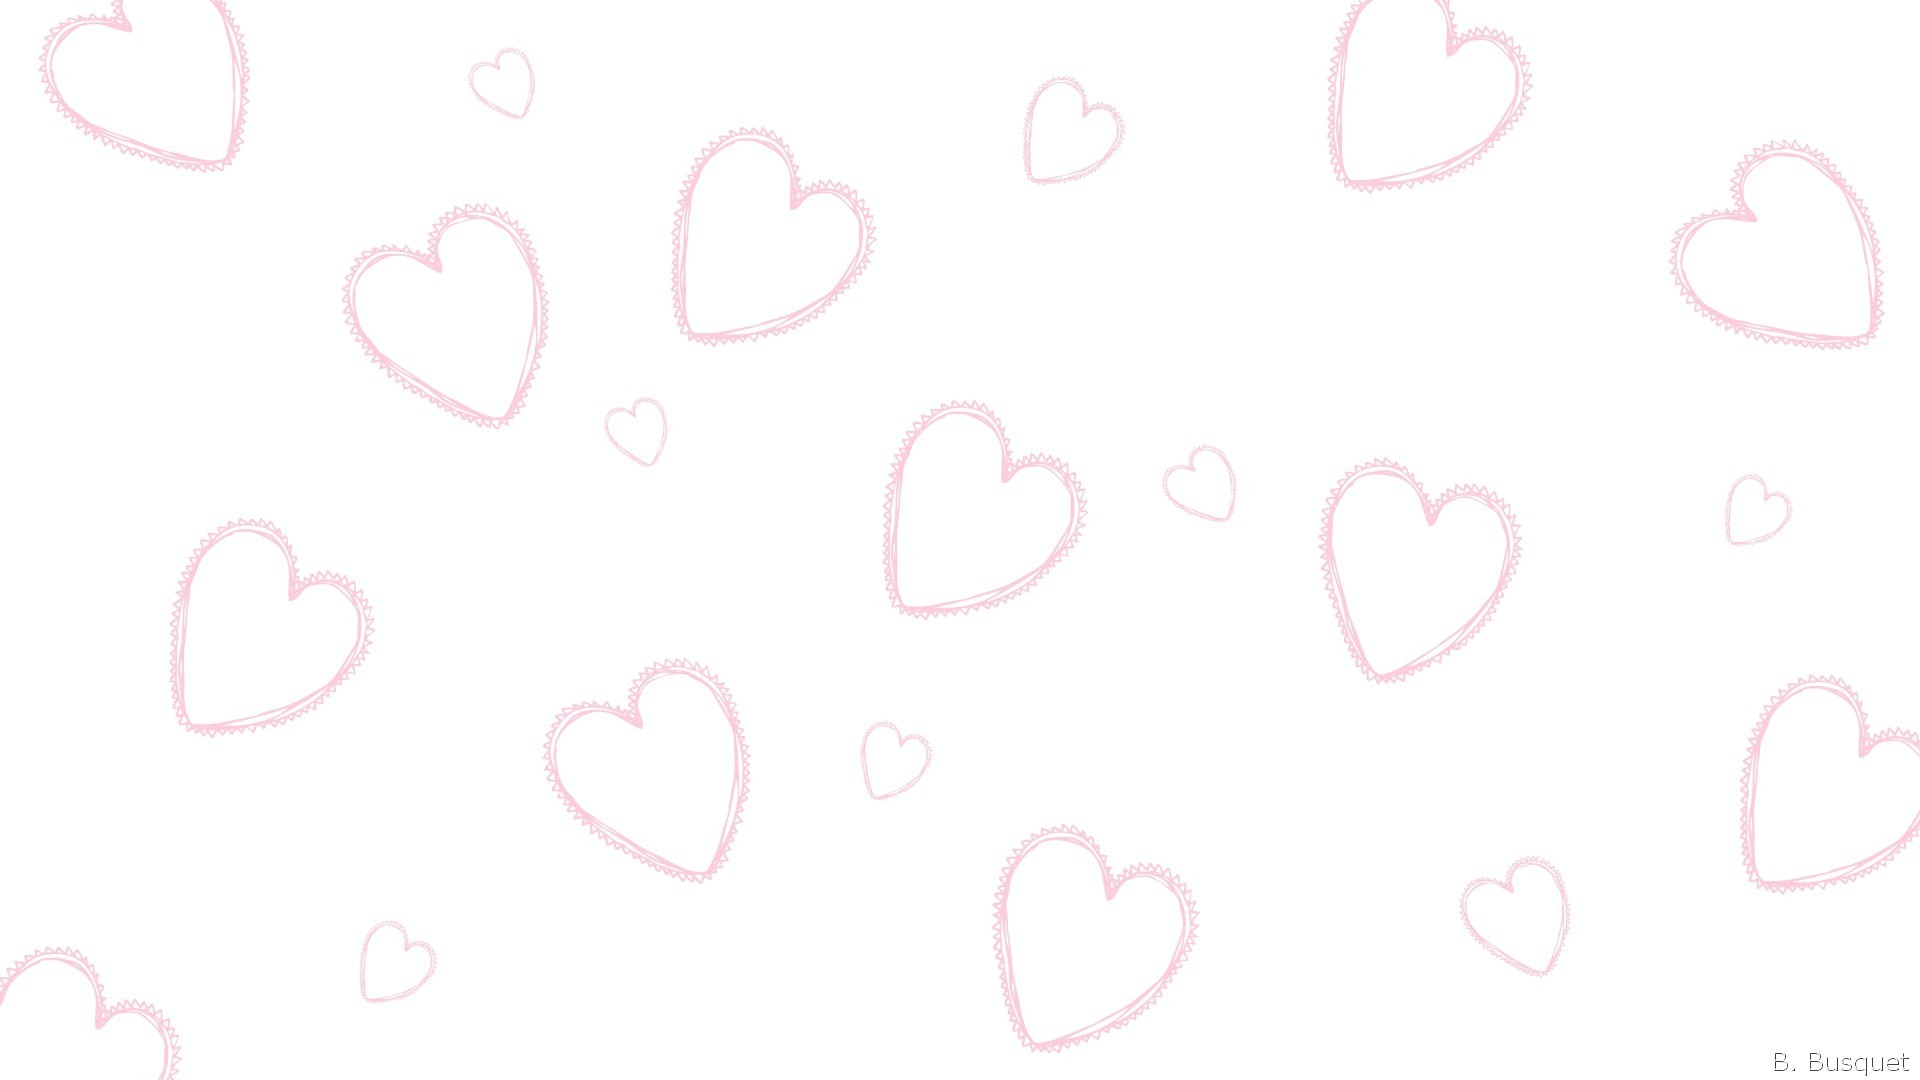 1920x1080 White wallpaper with pink hearts